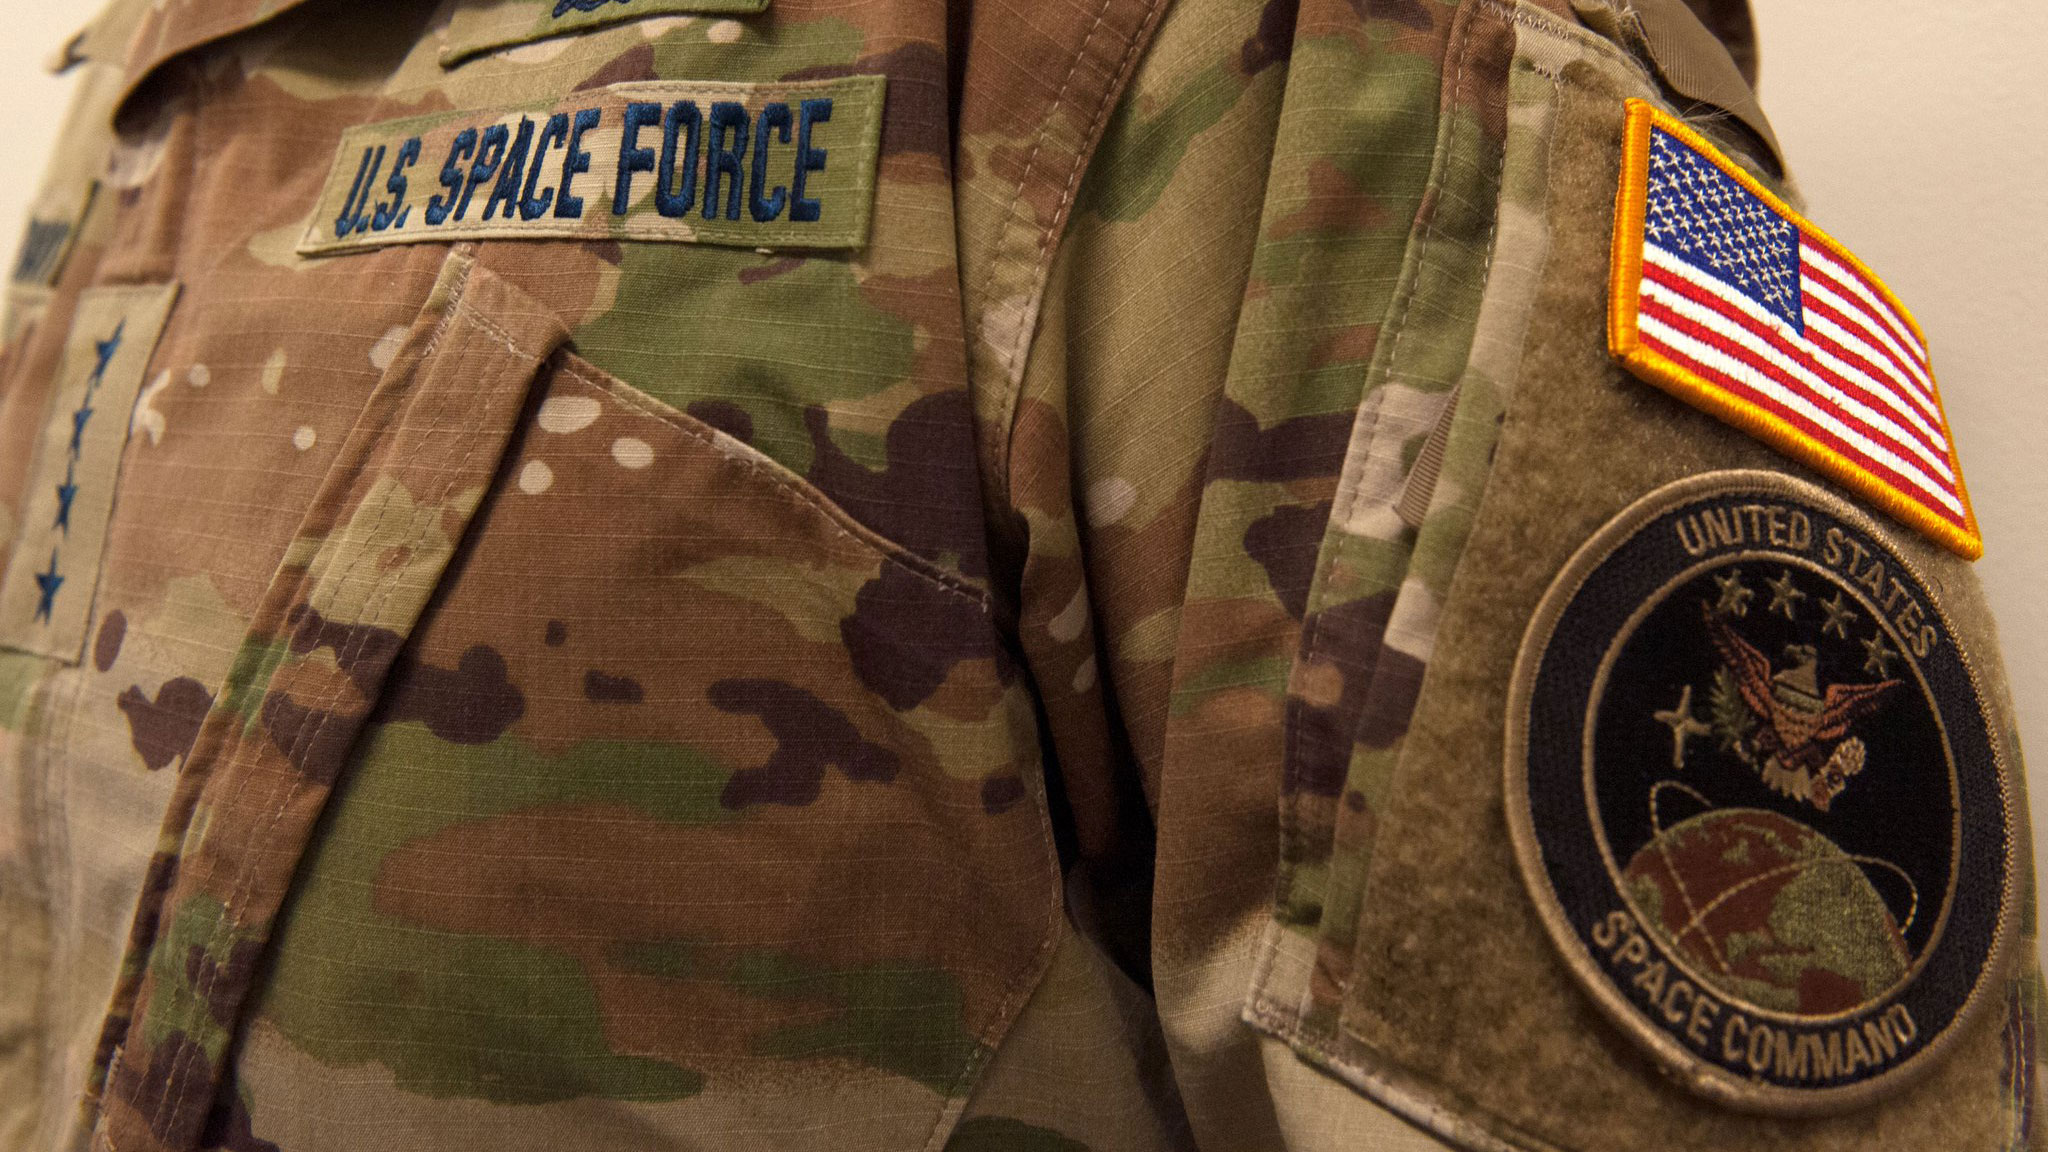 The US Space Force has revealed its utility uniform, and the internet has things to say about it